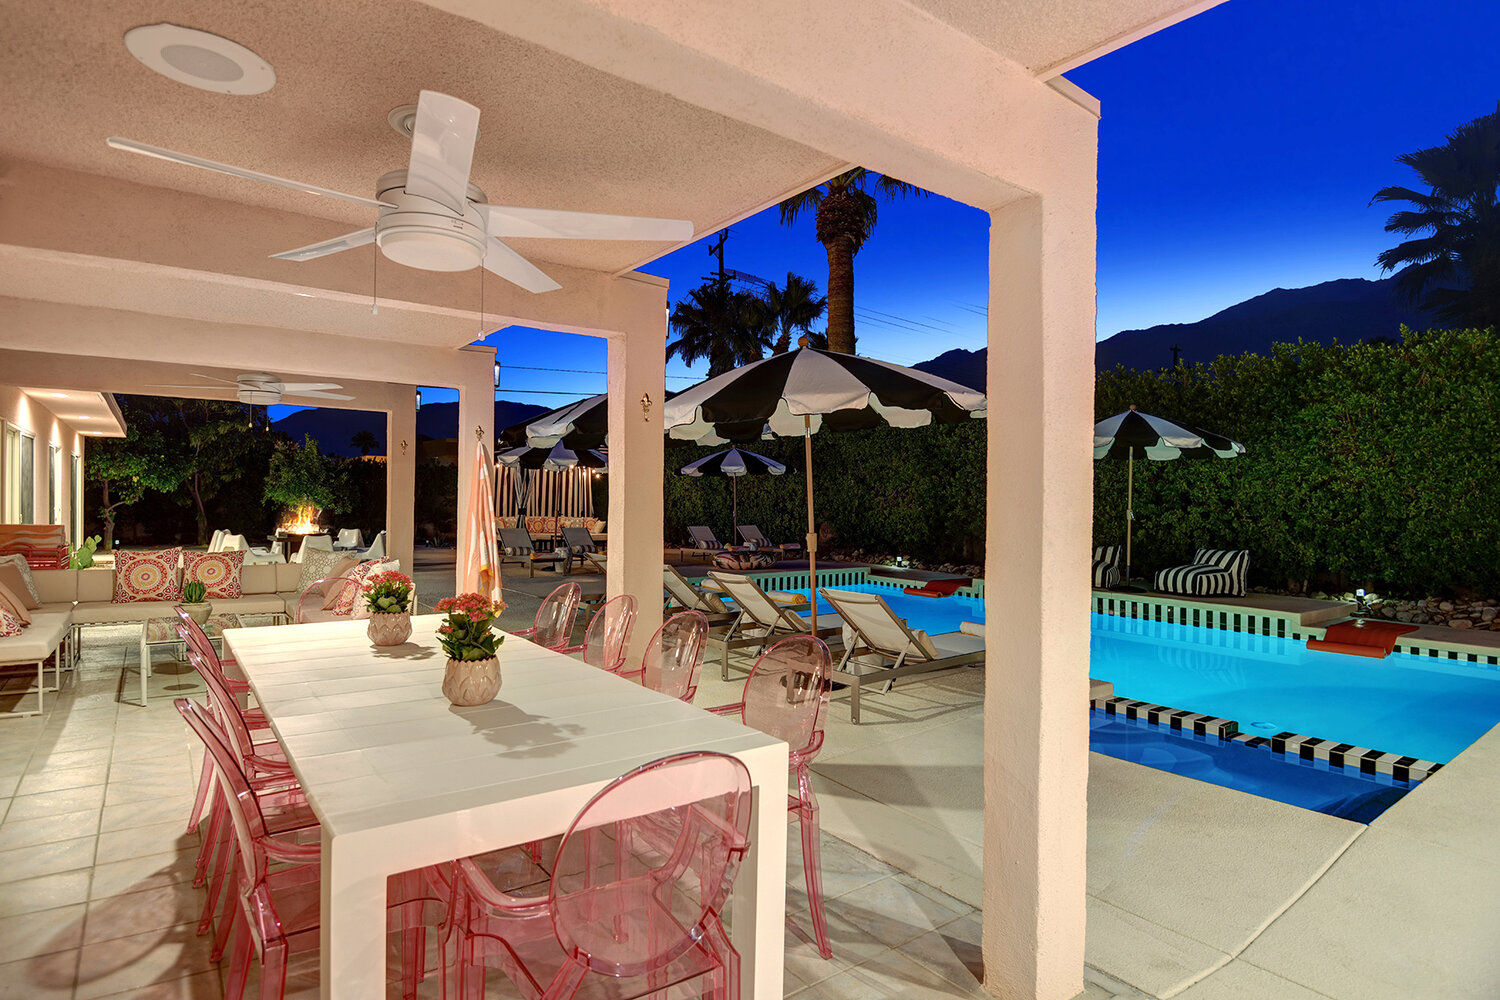 COVERED+DINING+TO+POOL+AND+MOUTNAINS+NIGHT+RS.jpg